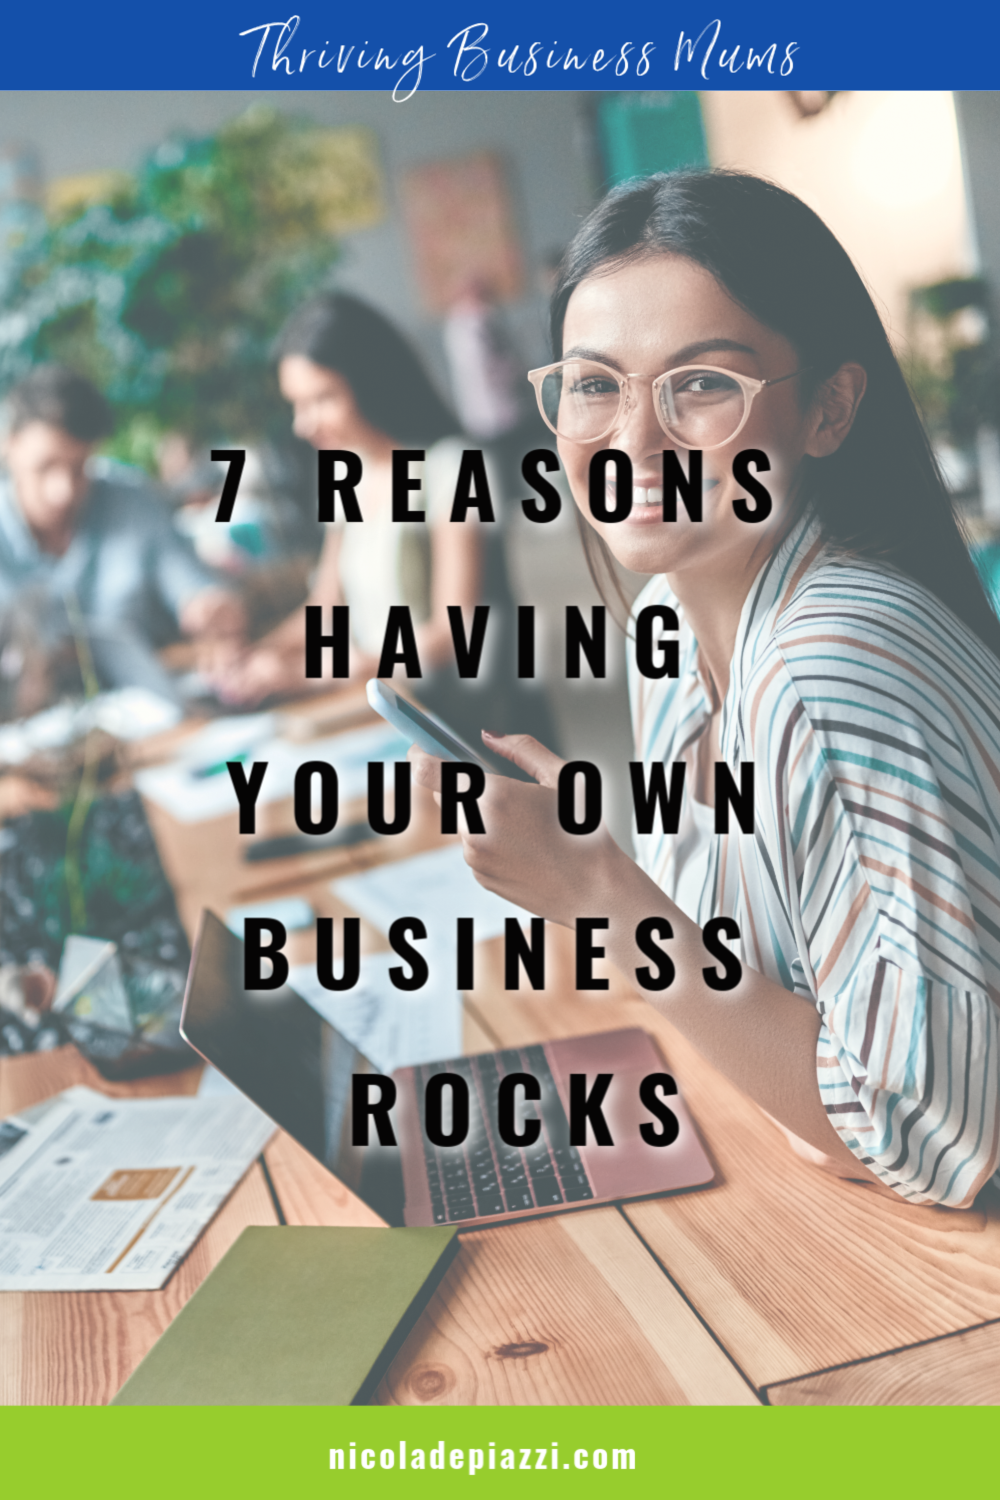 7 REASONS HAVING YOUR OWN BUSINESS ROCKS